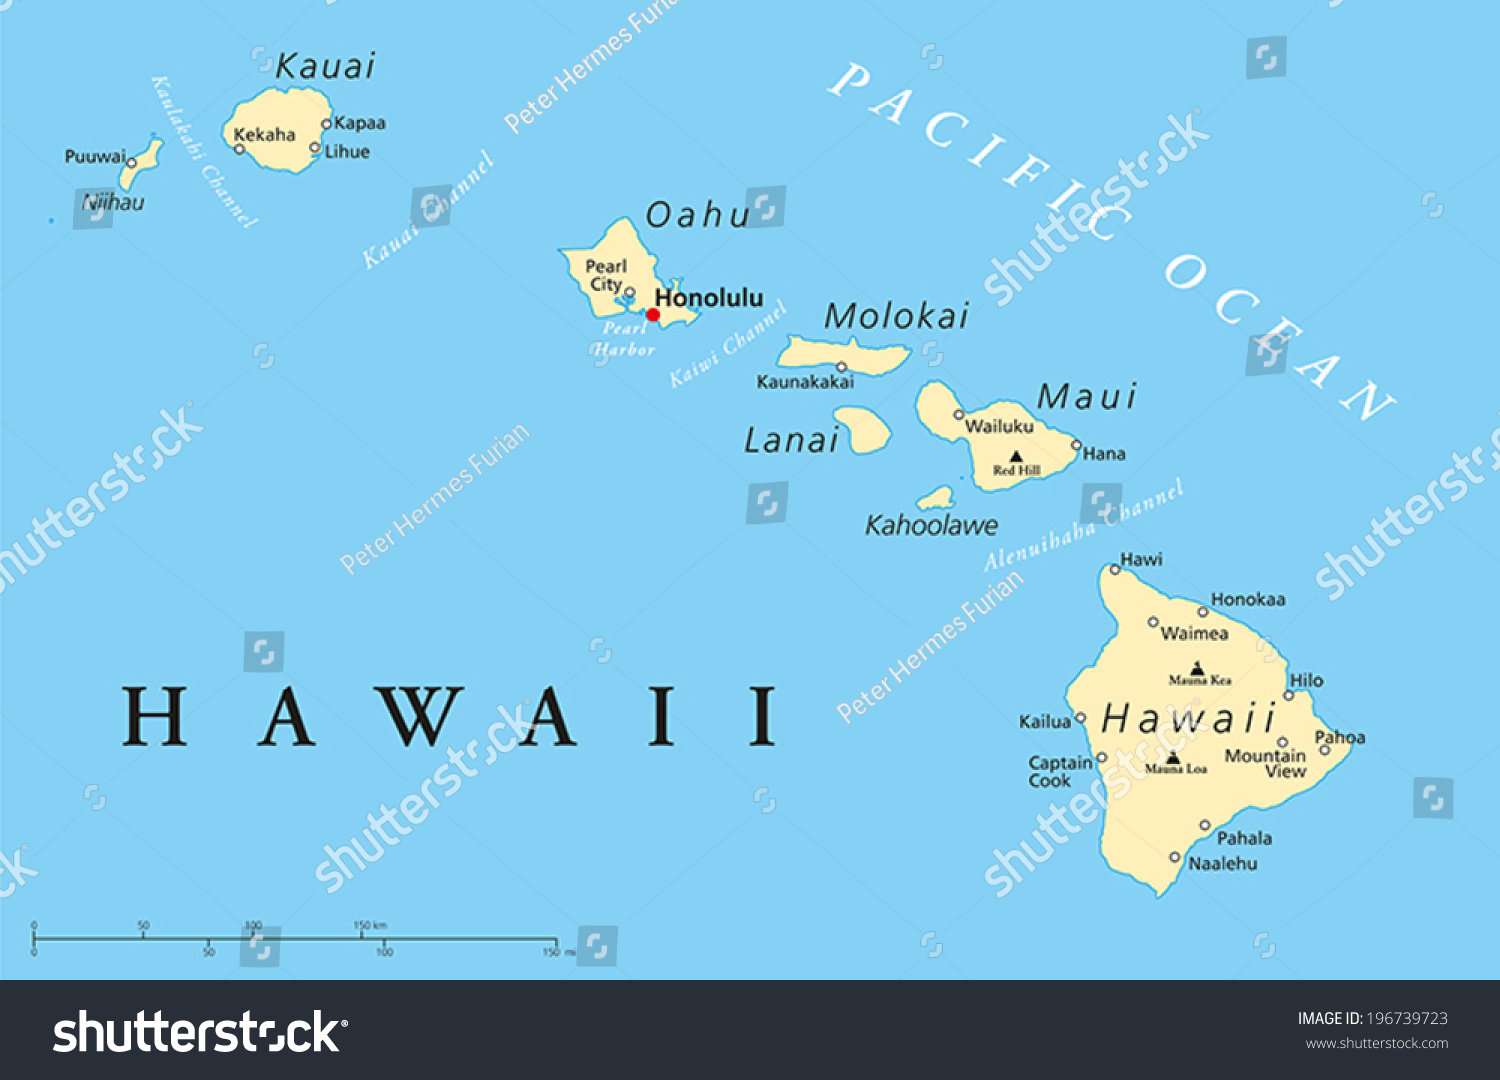 Hawaii Islands Political Map Capital Honolulu Stock Vector - Hawaii cities map